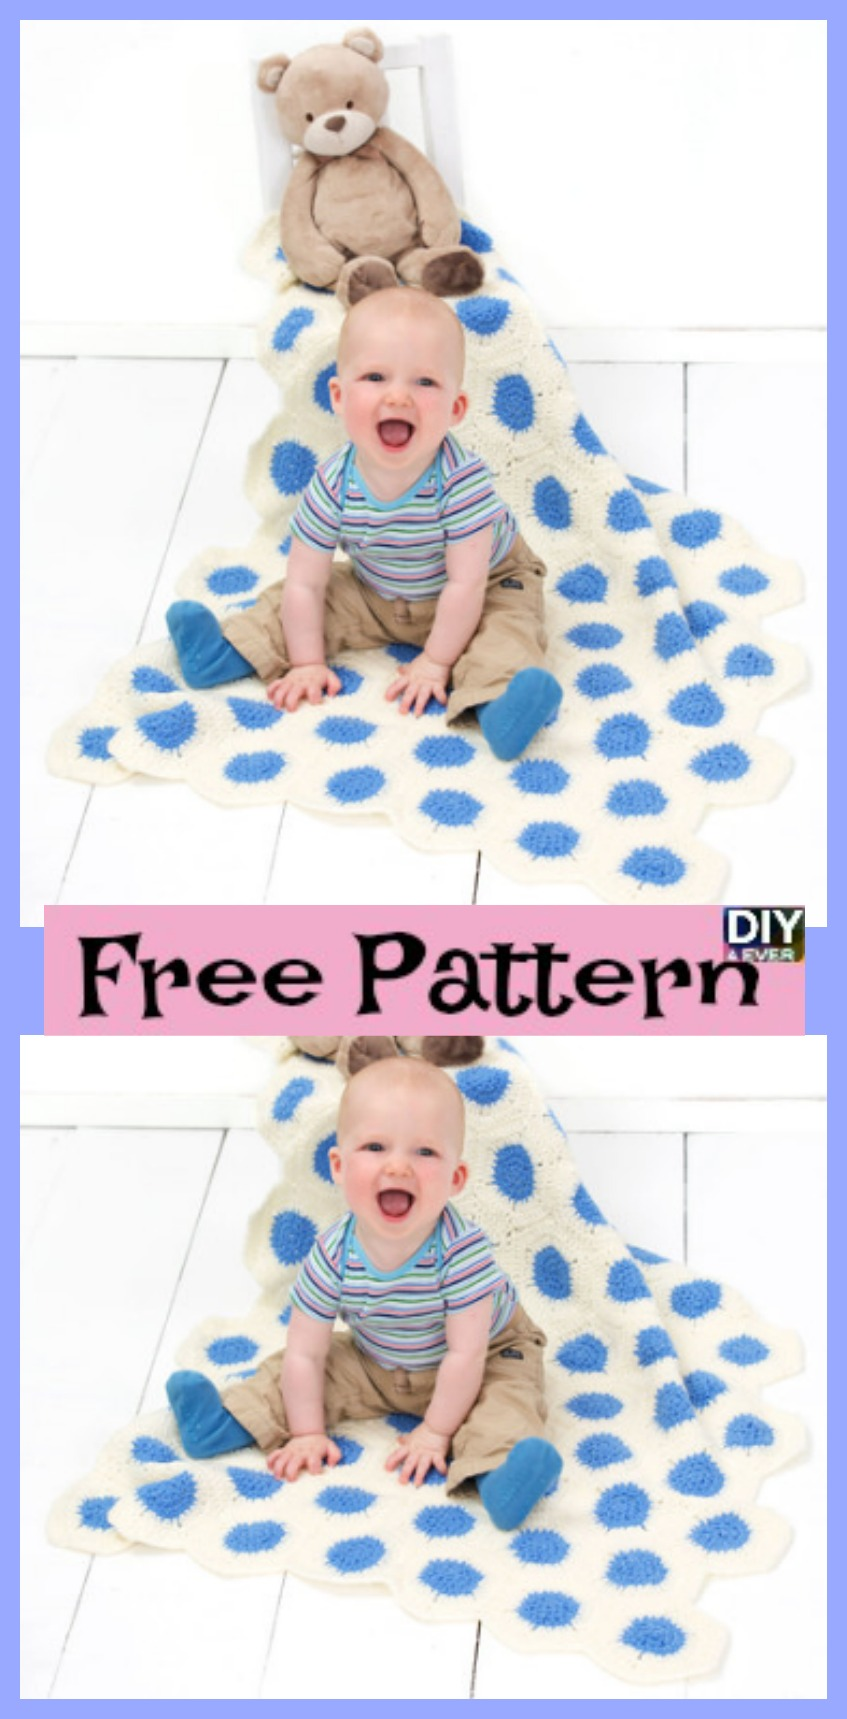 diy4ever-Polka-Dot Crochet Baby Blanket - Free Pattern